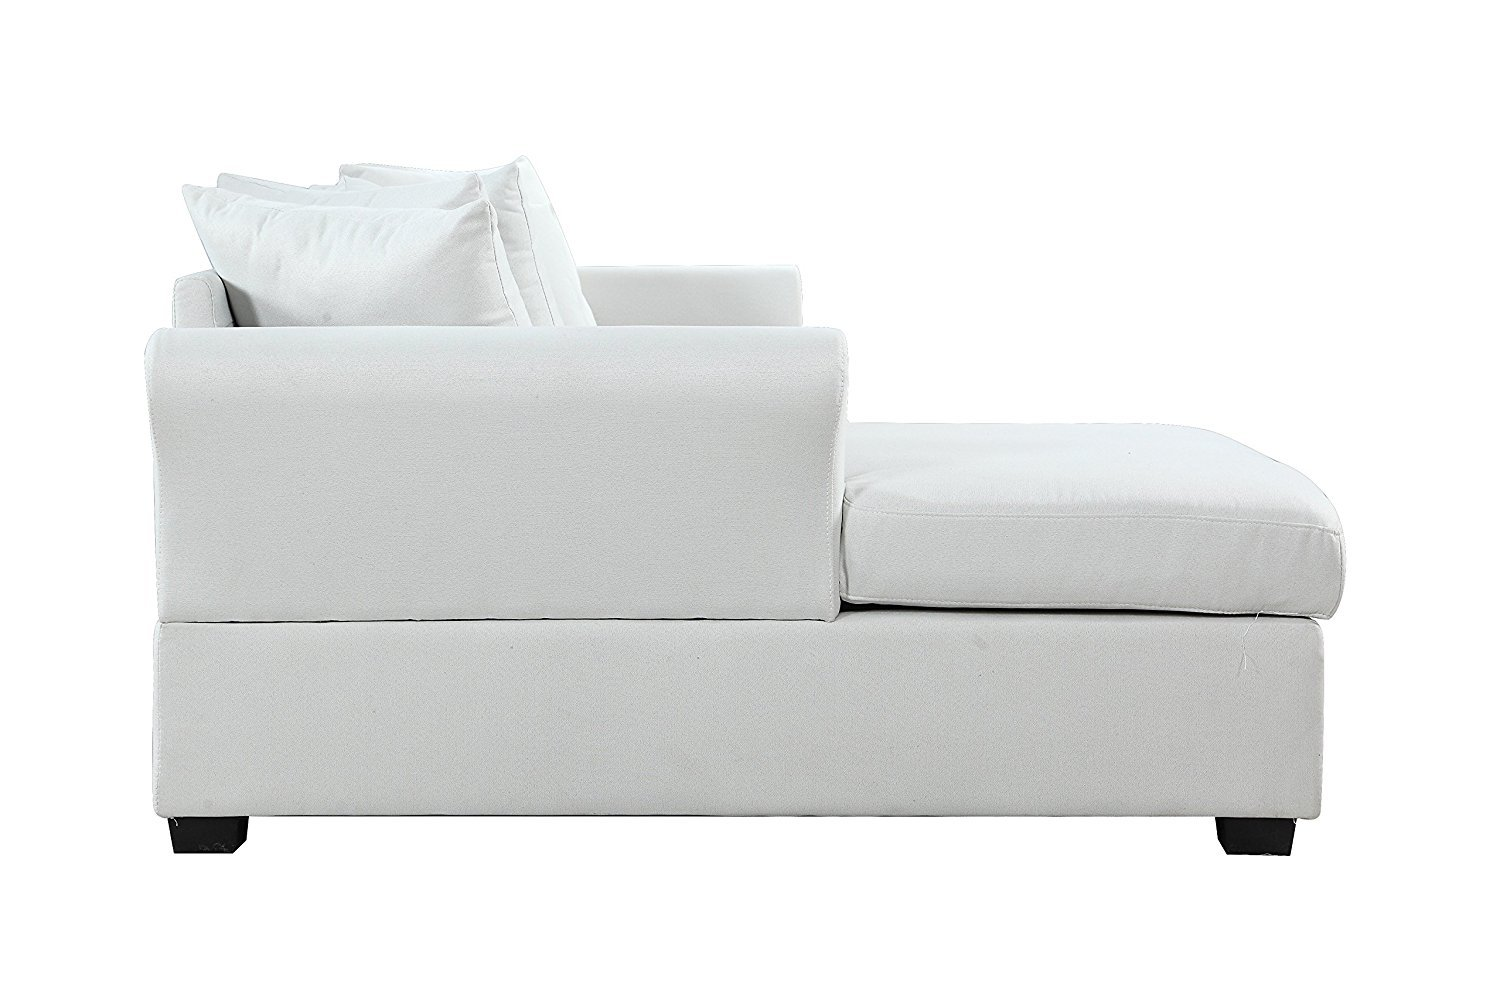 Modern Large Fabric Sectional Sofa, L-Shape Couch, Extra ...